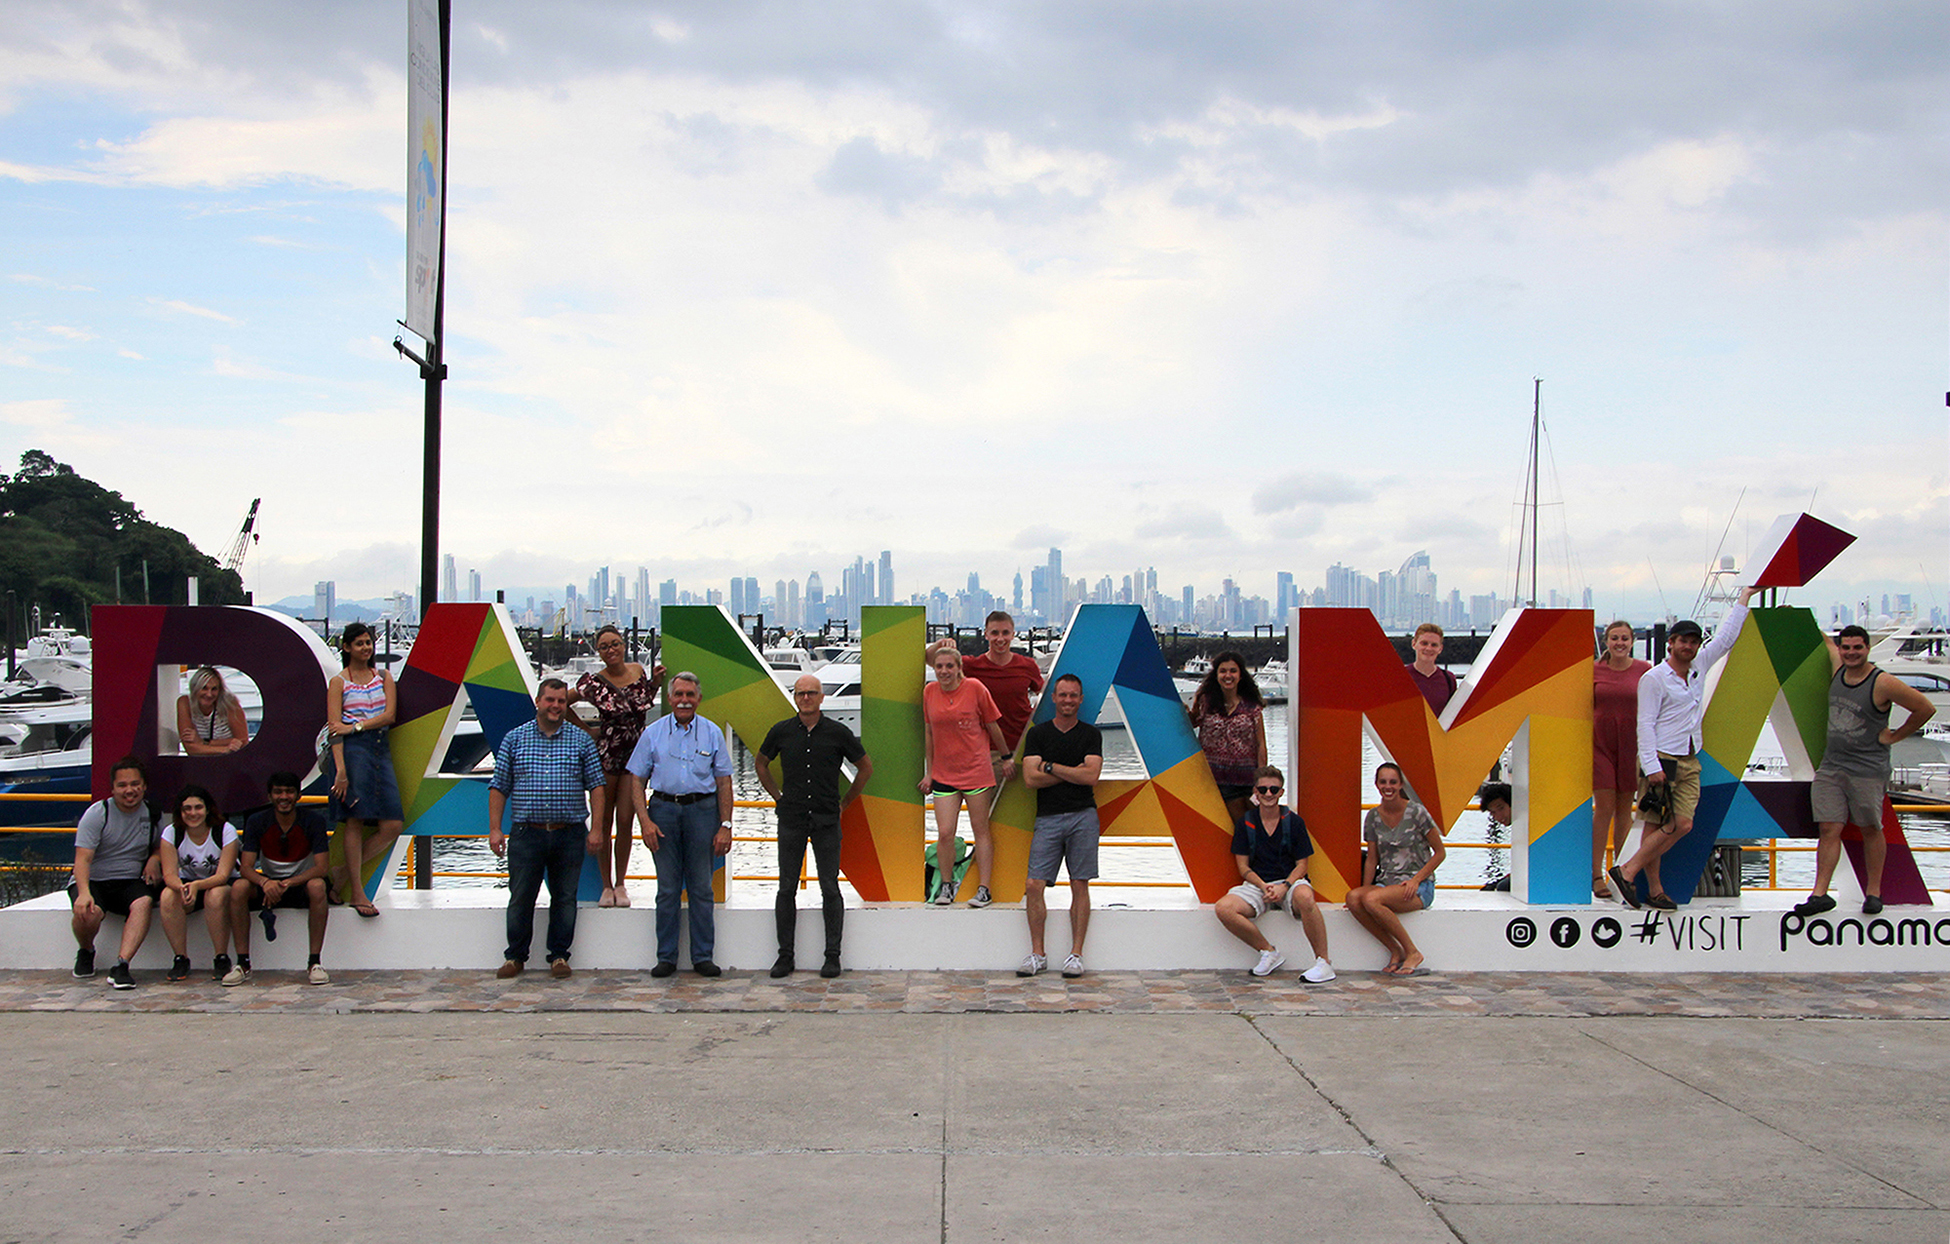 A group of 18 architecture and interior design students went on a study abroad experience to Panama, September 13-16, 2017.